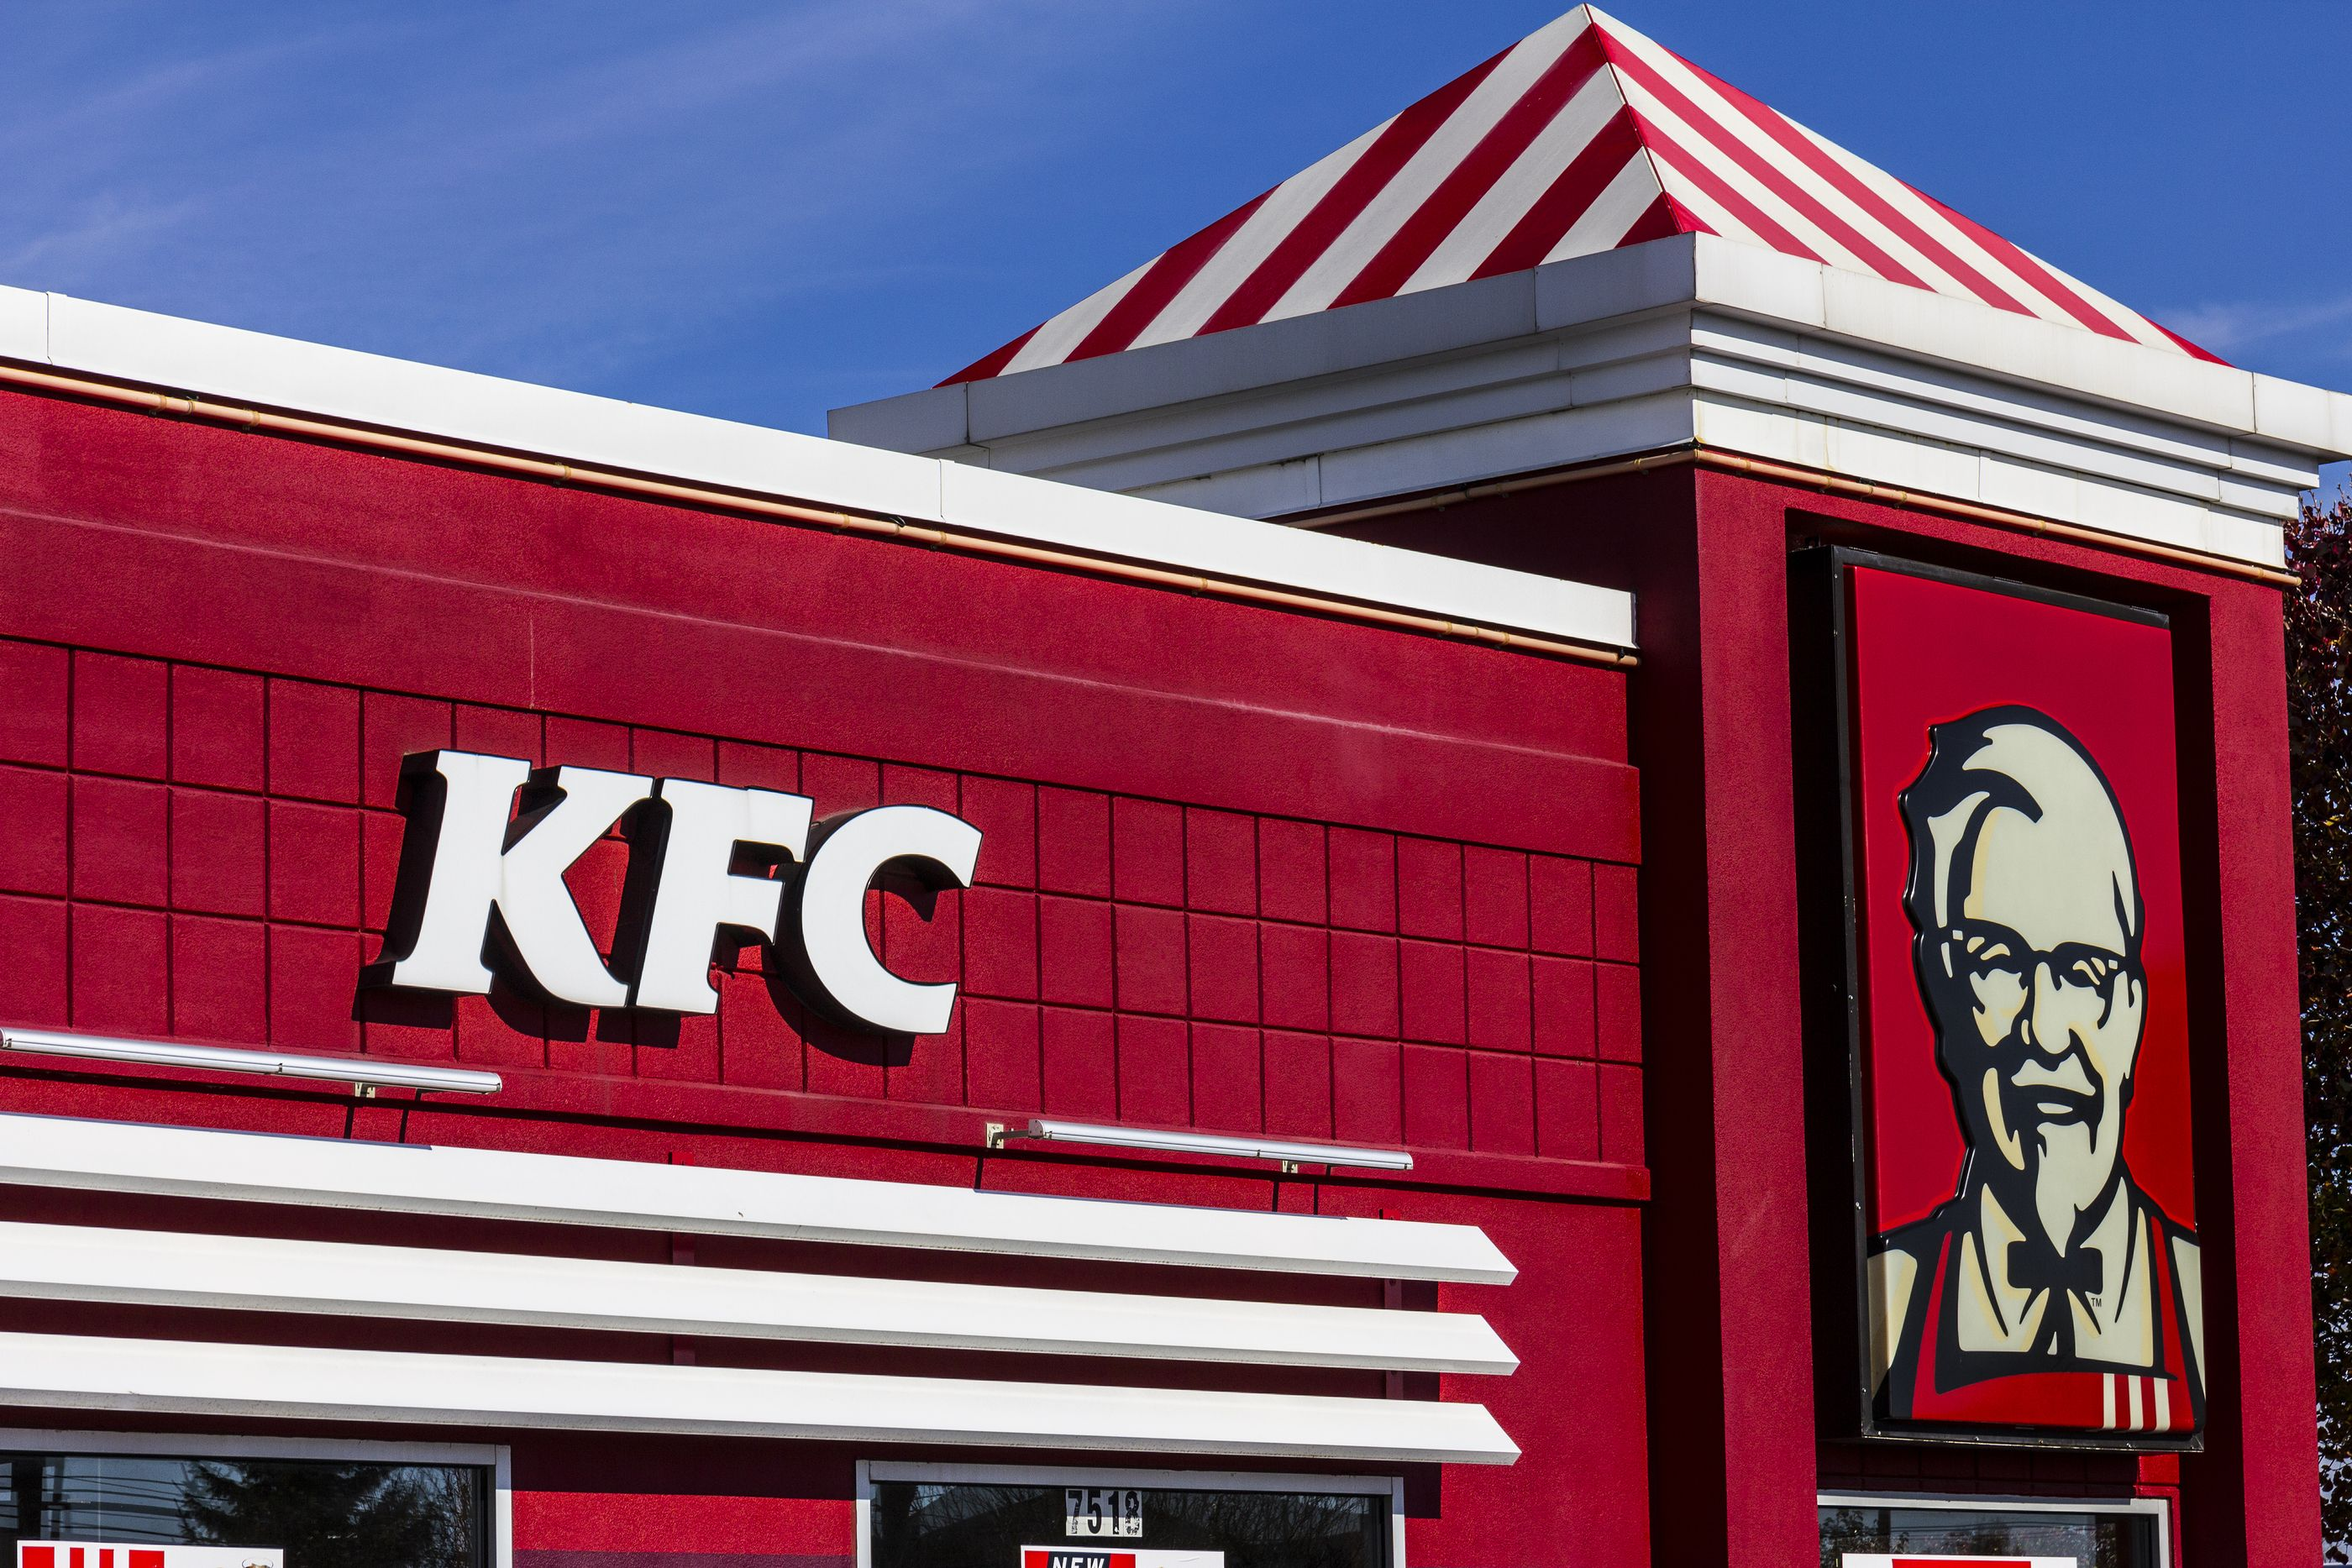 KFC franchisee fine after worker suffers burns | Inside Franchise Business